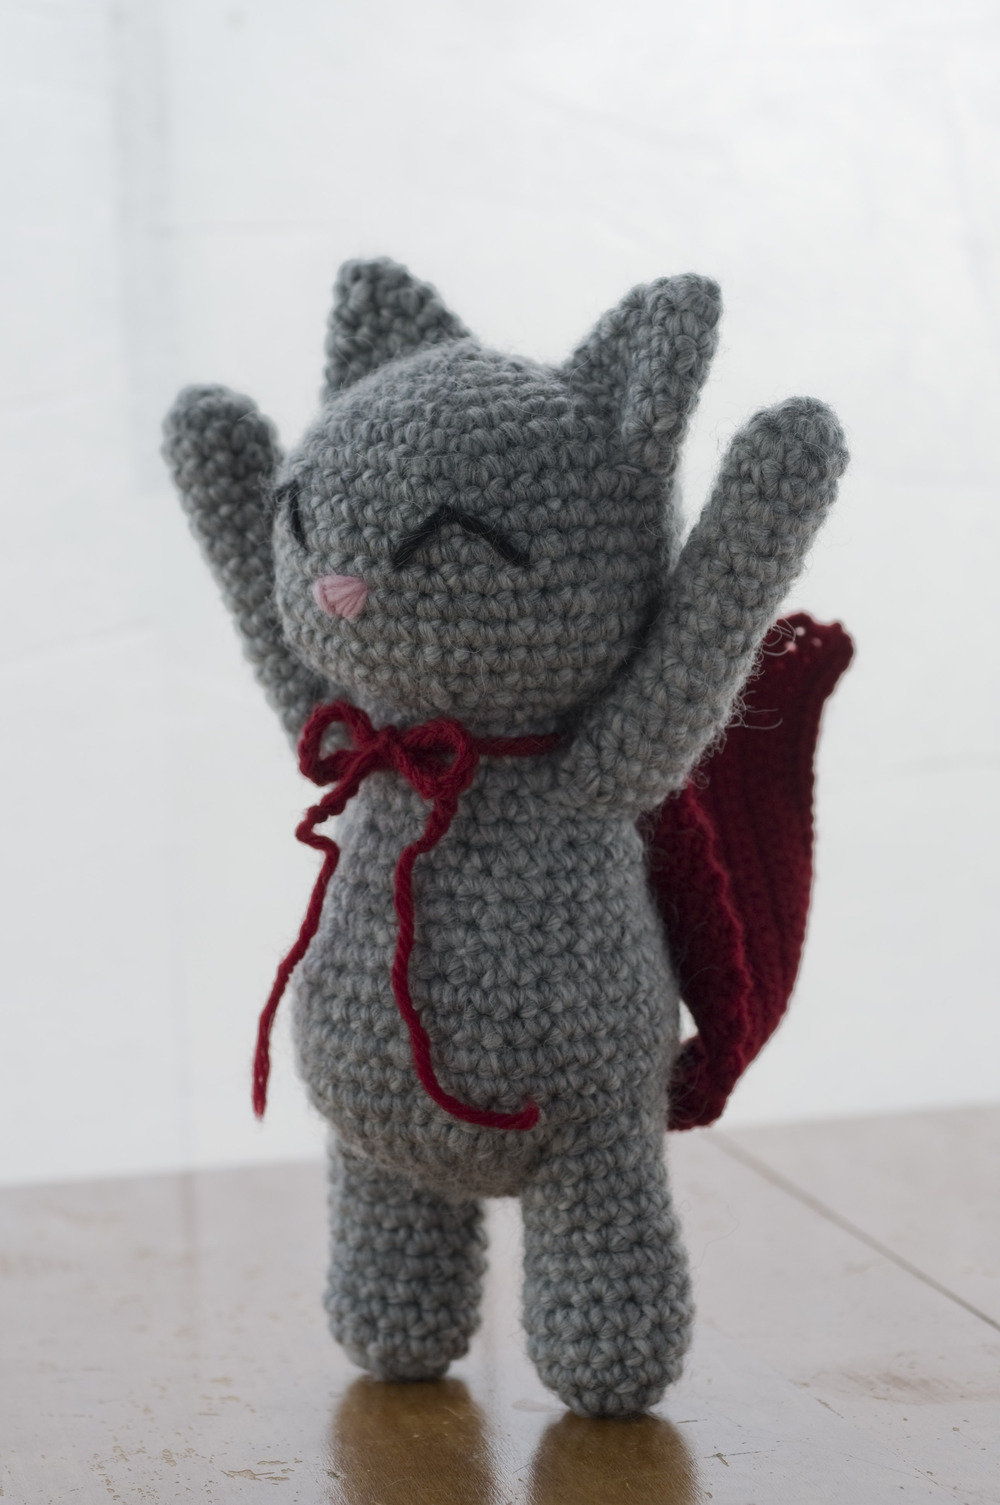 For some reason Bunny decided to crochet a cape for this cat.